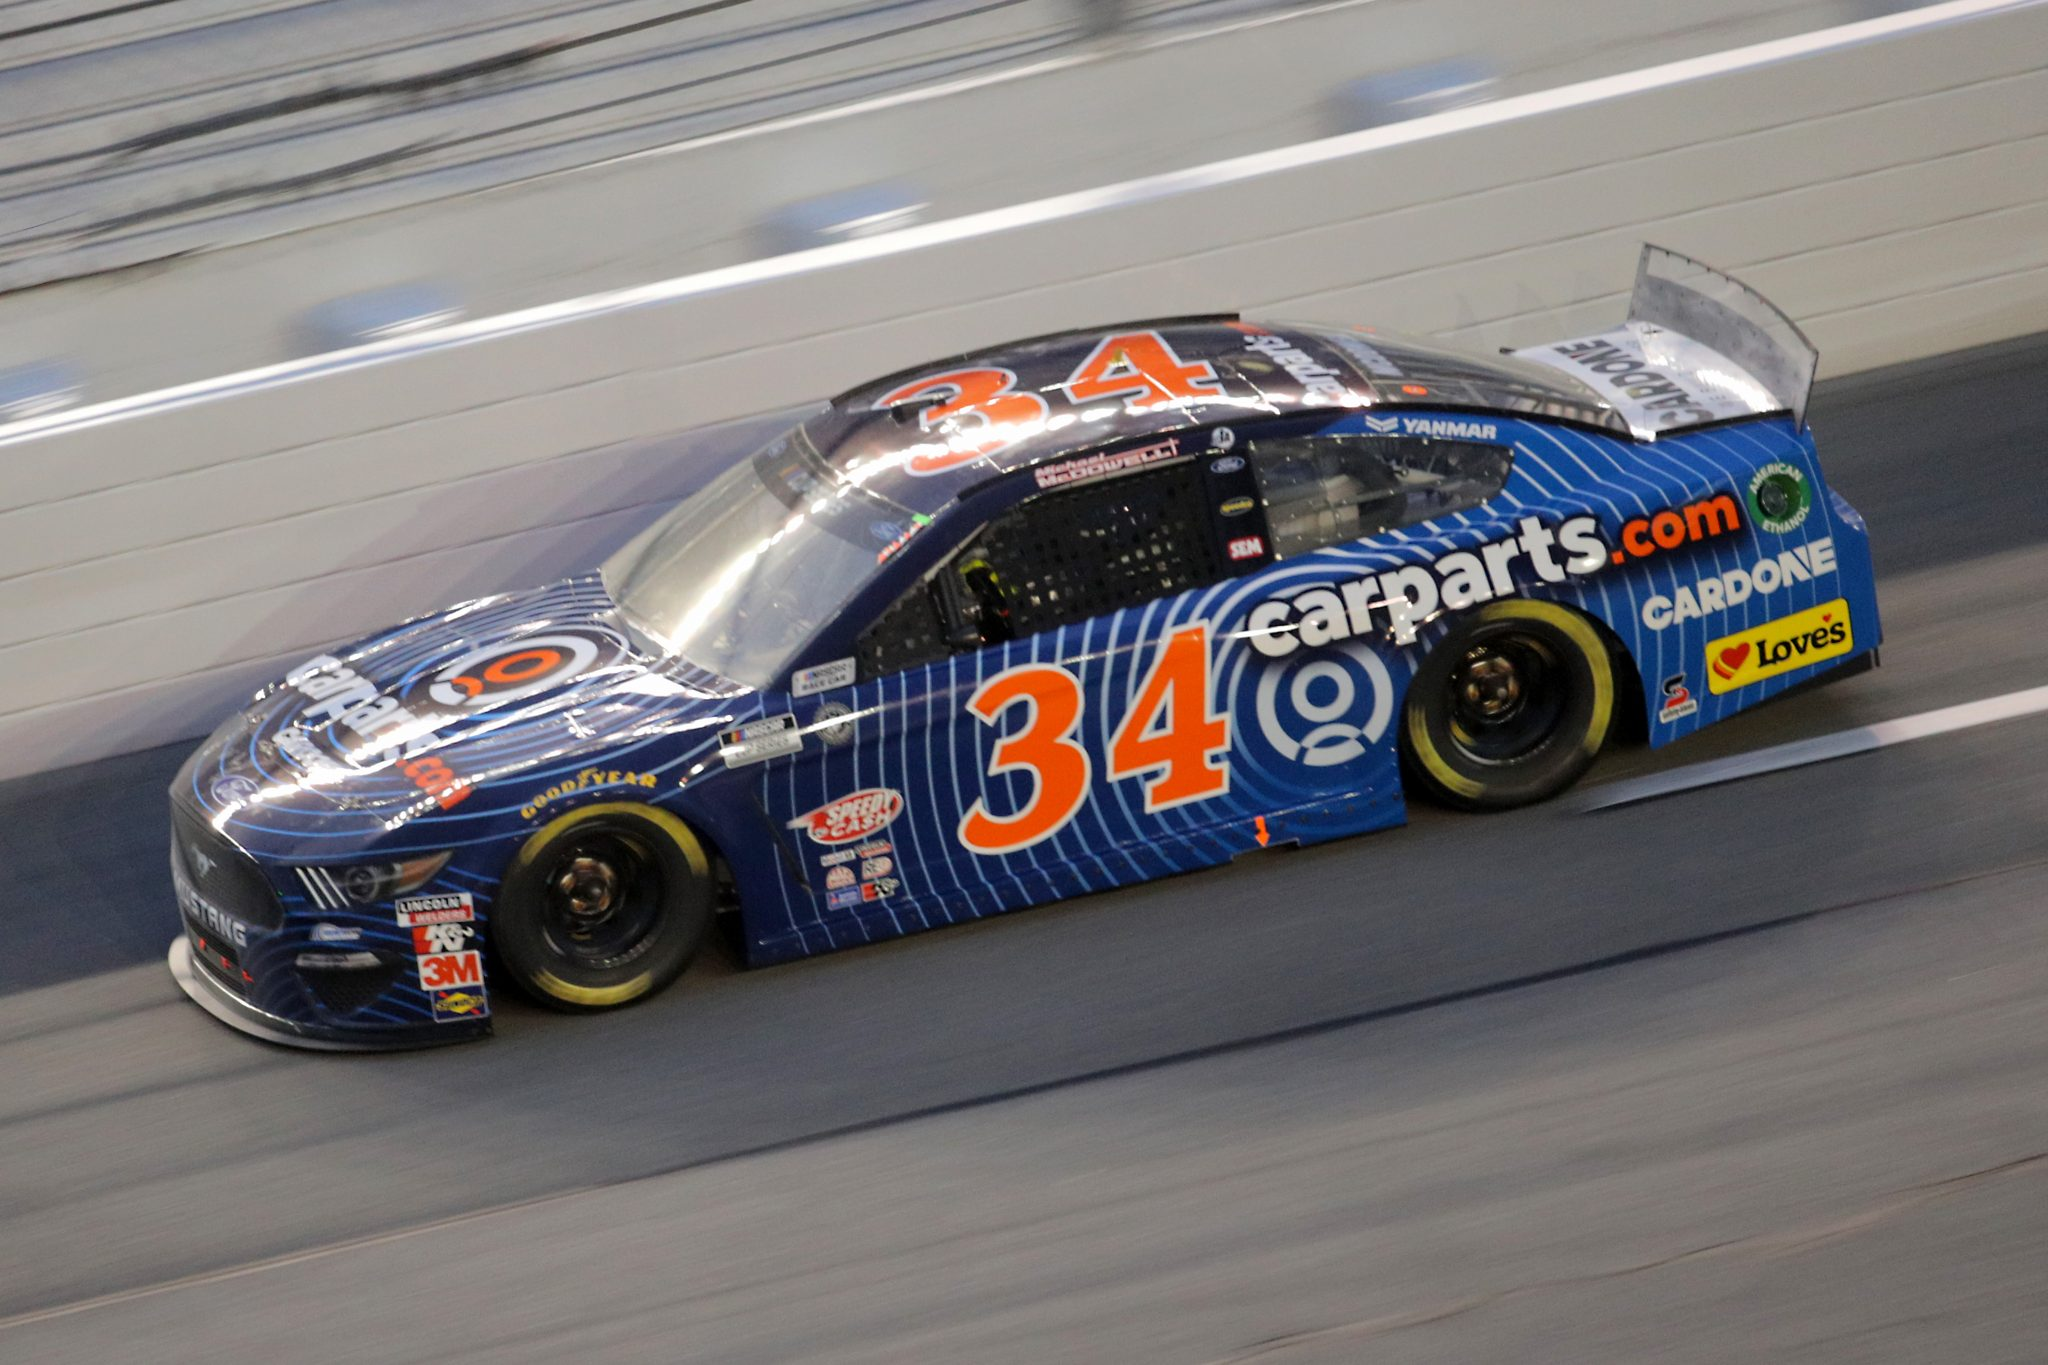 DAYTONA BEACH, FLORIDA - AUGUST 29: Michael McDowell, driver of the #34 CarParts.com Ford, drives during the NASCAR Cup Series Coke Zero Sugar 400 at Daytona International Speedway on August 29, 2020 in Daytona Beach, Florida. (Photo by Chris Graythen/Getty Images) | Getty Images